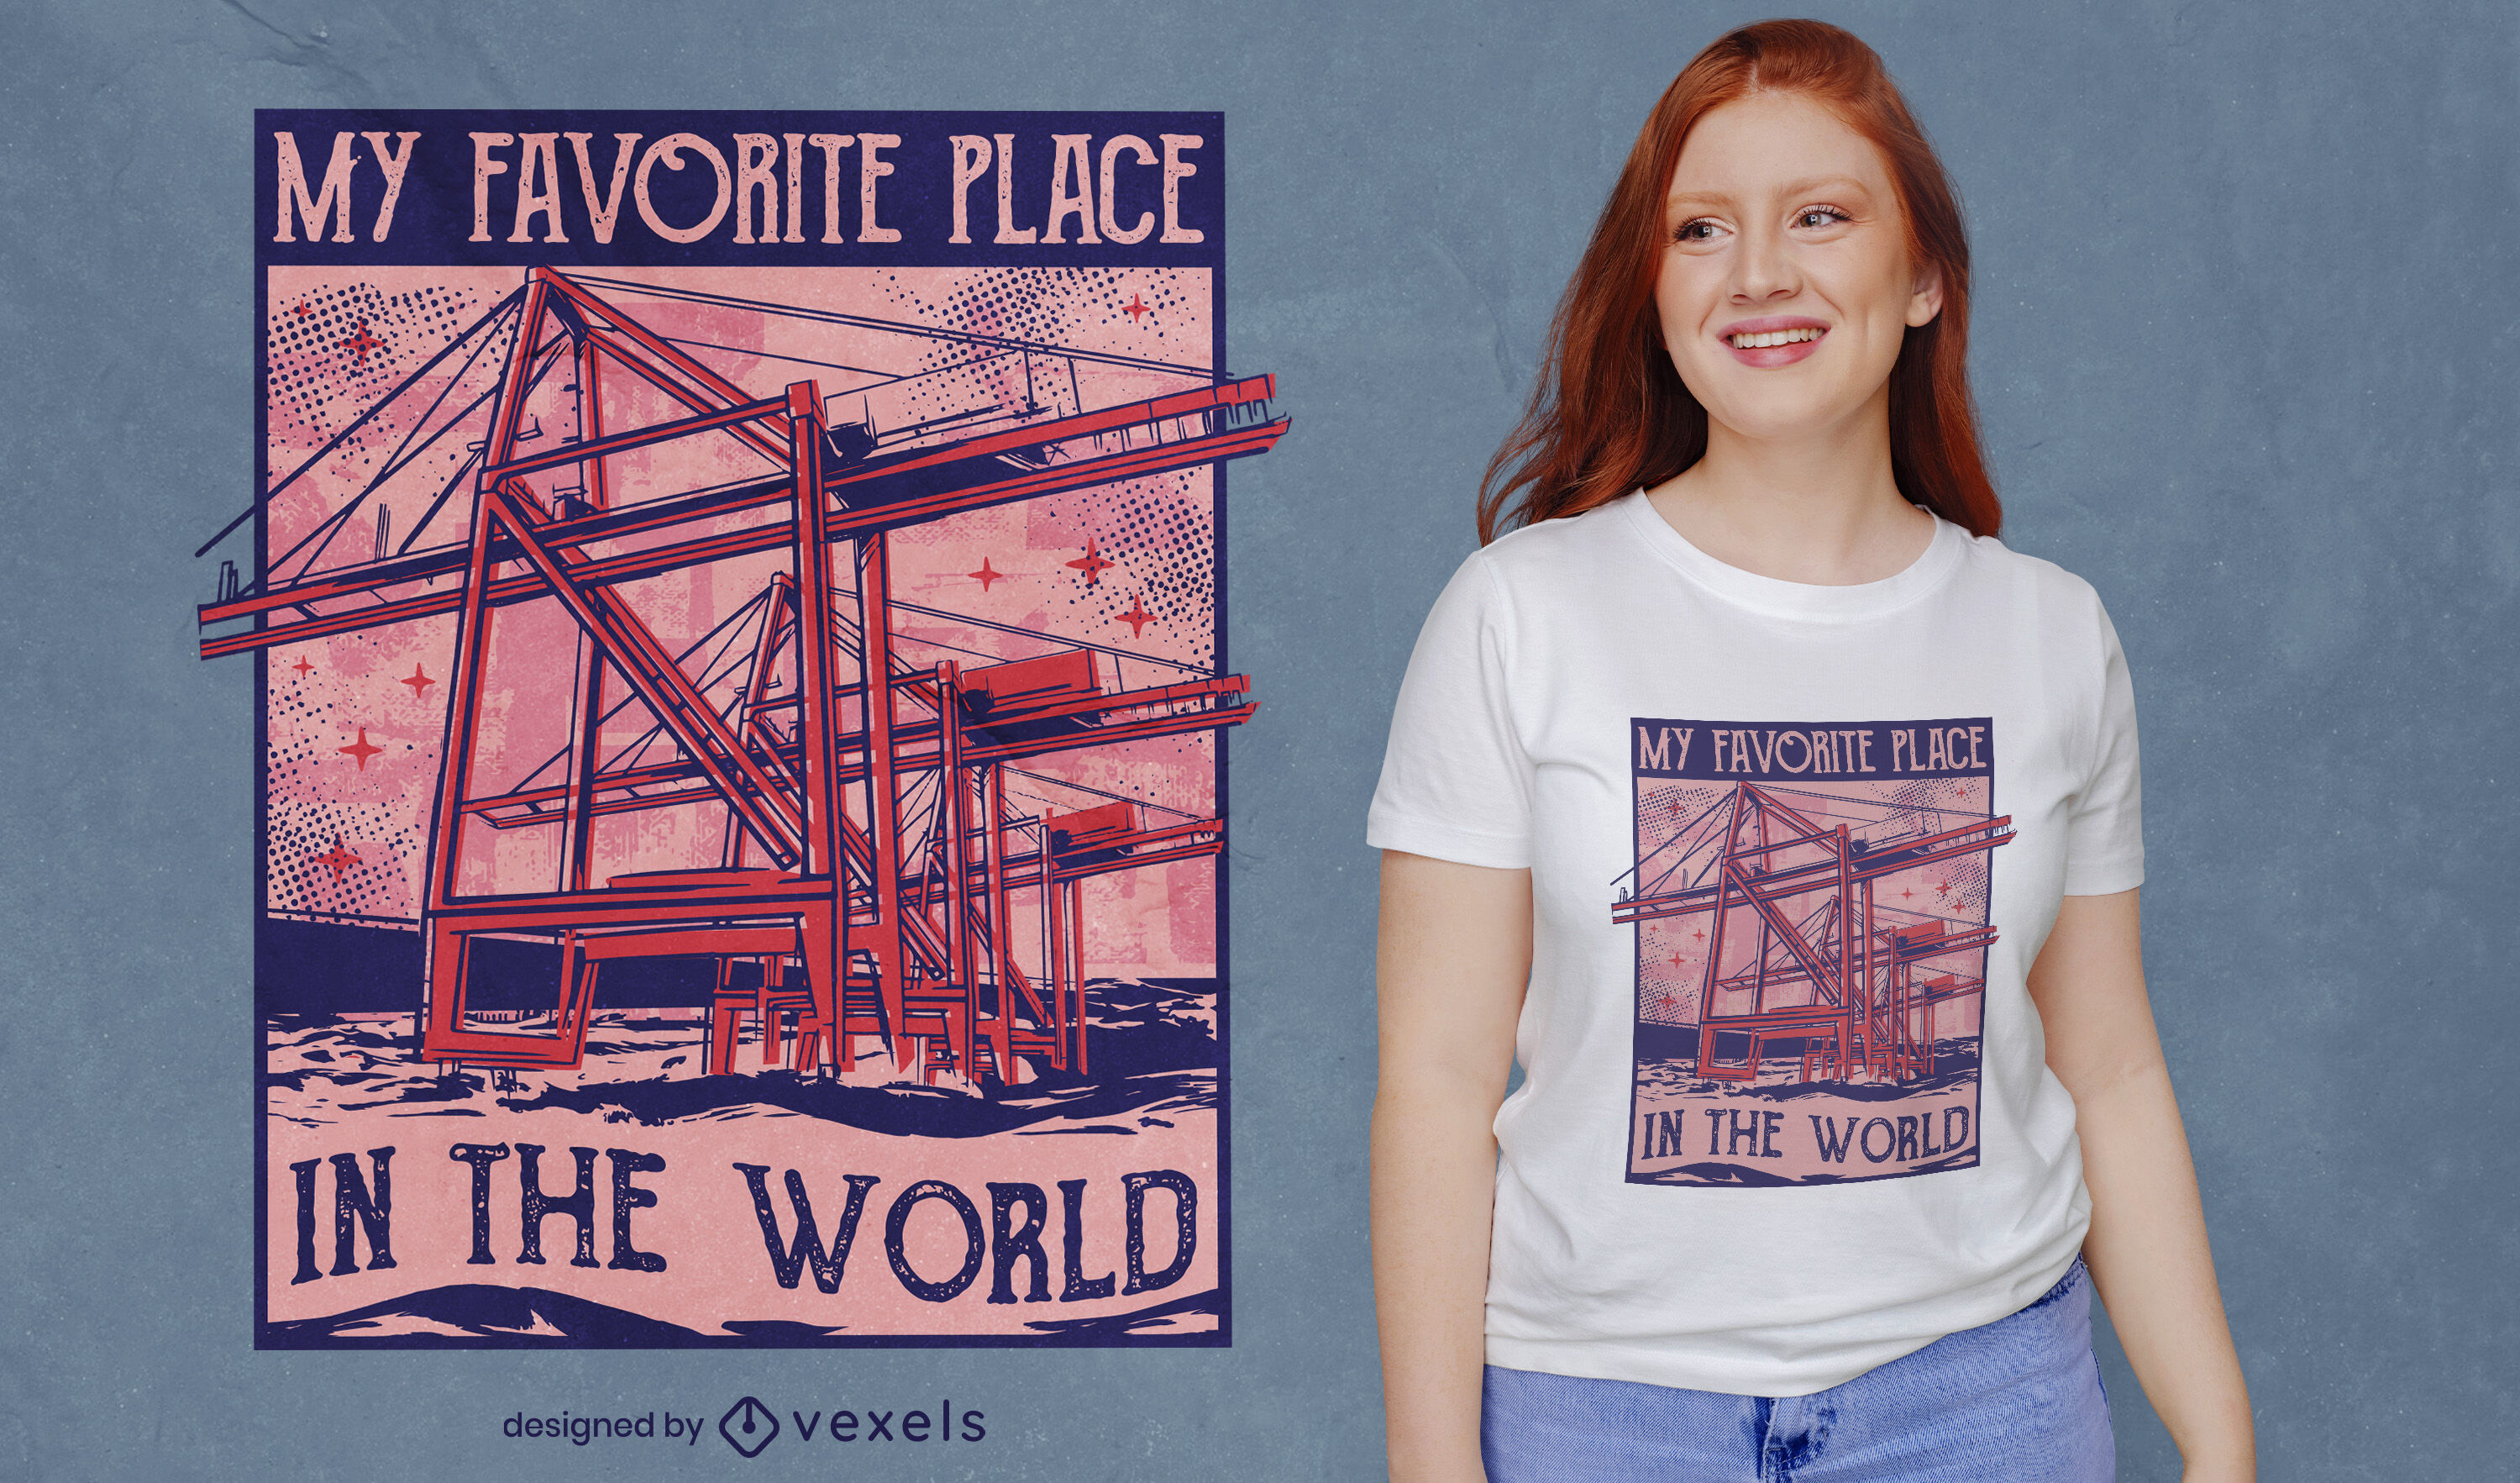 My place in the world t-shirt design